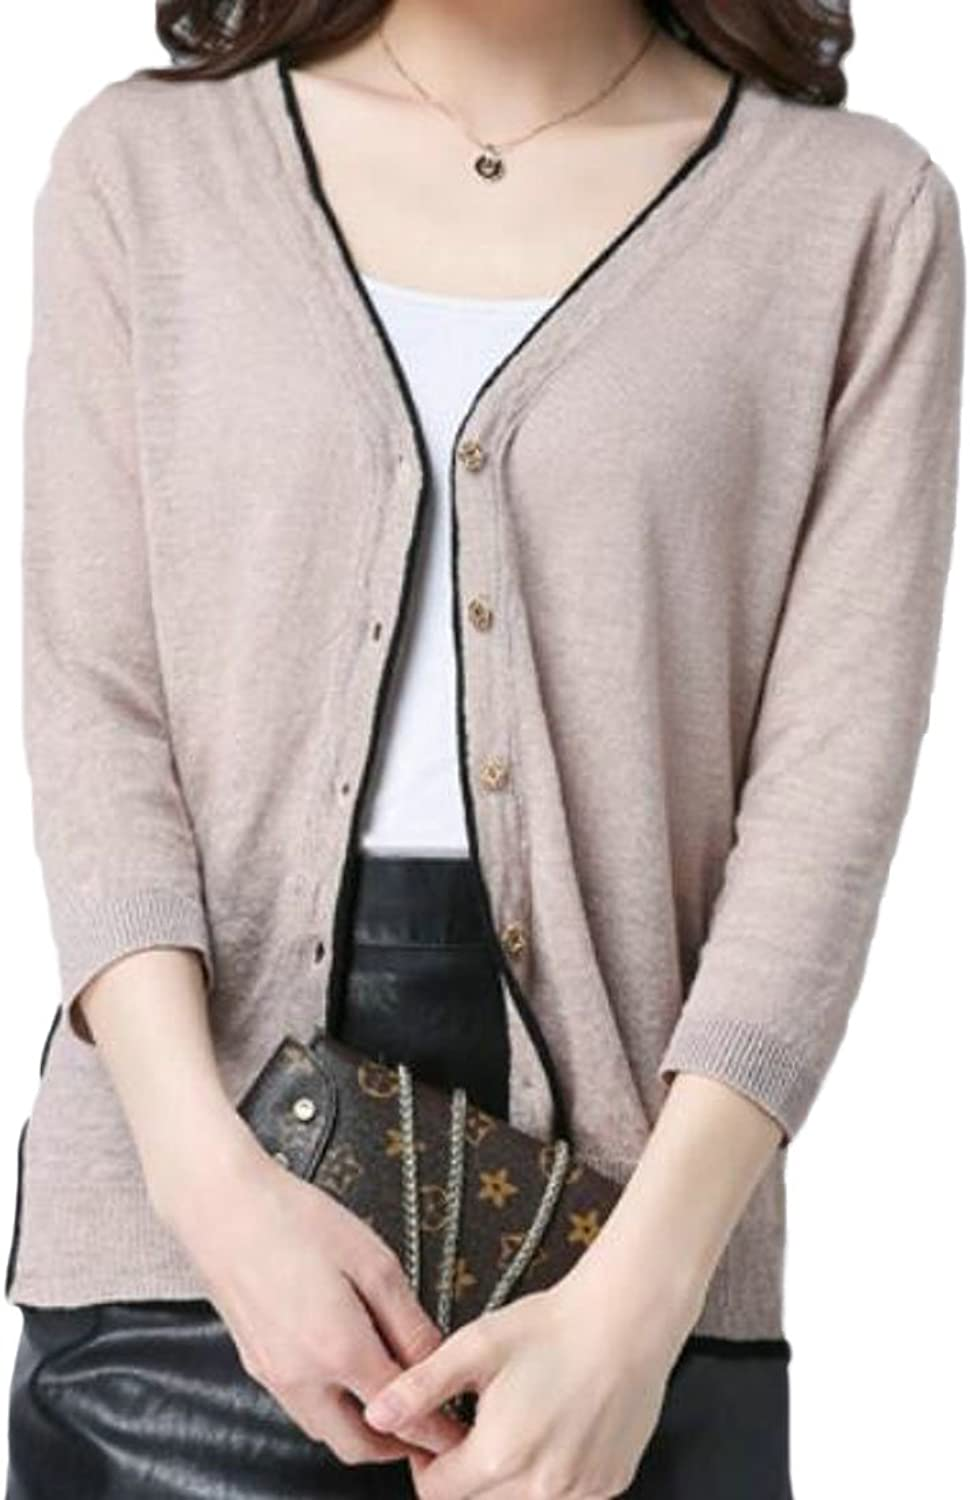 Nanquanwomen clothes NQ Women's Button up Short Cardigans Nine Points Sleeve Knit Shawl